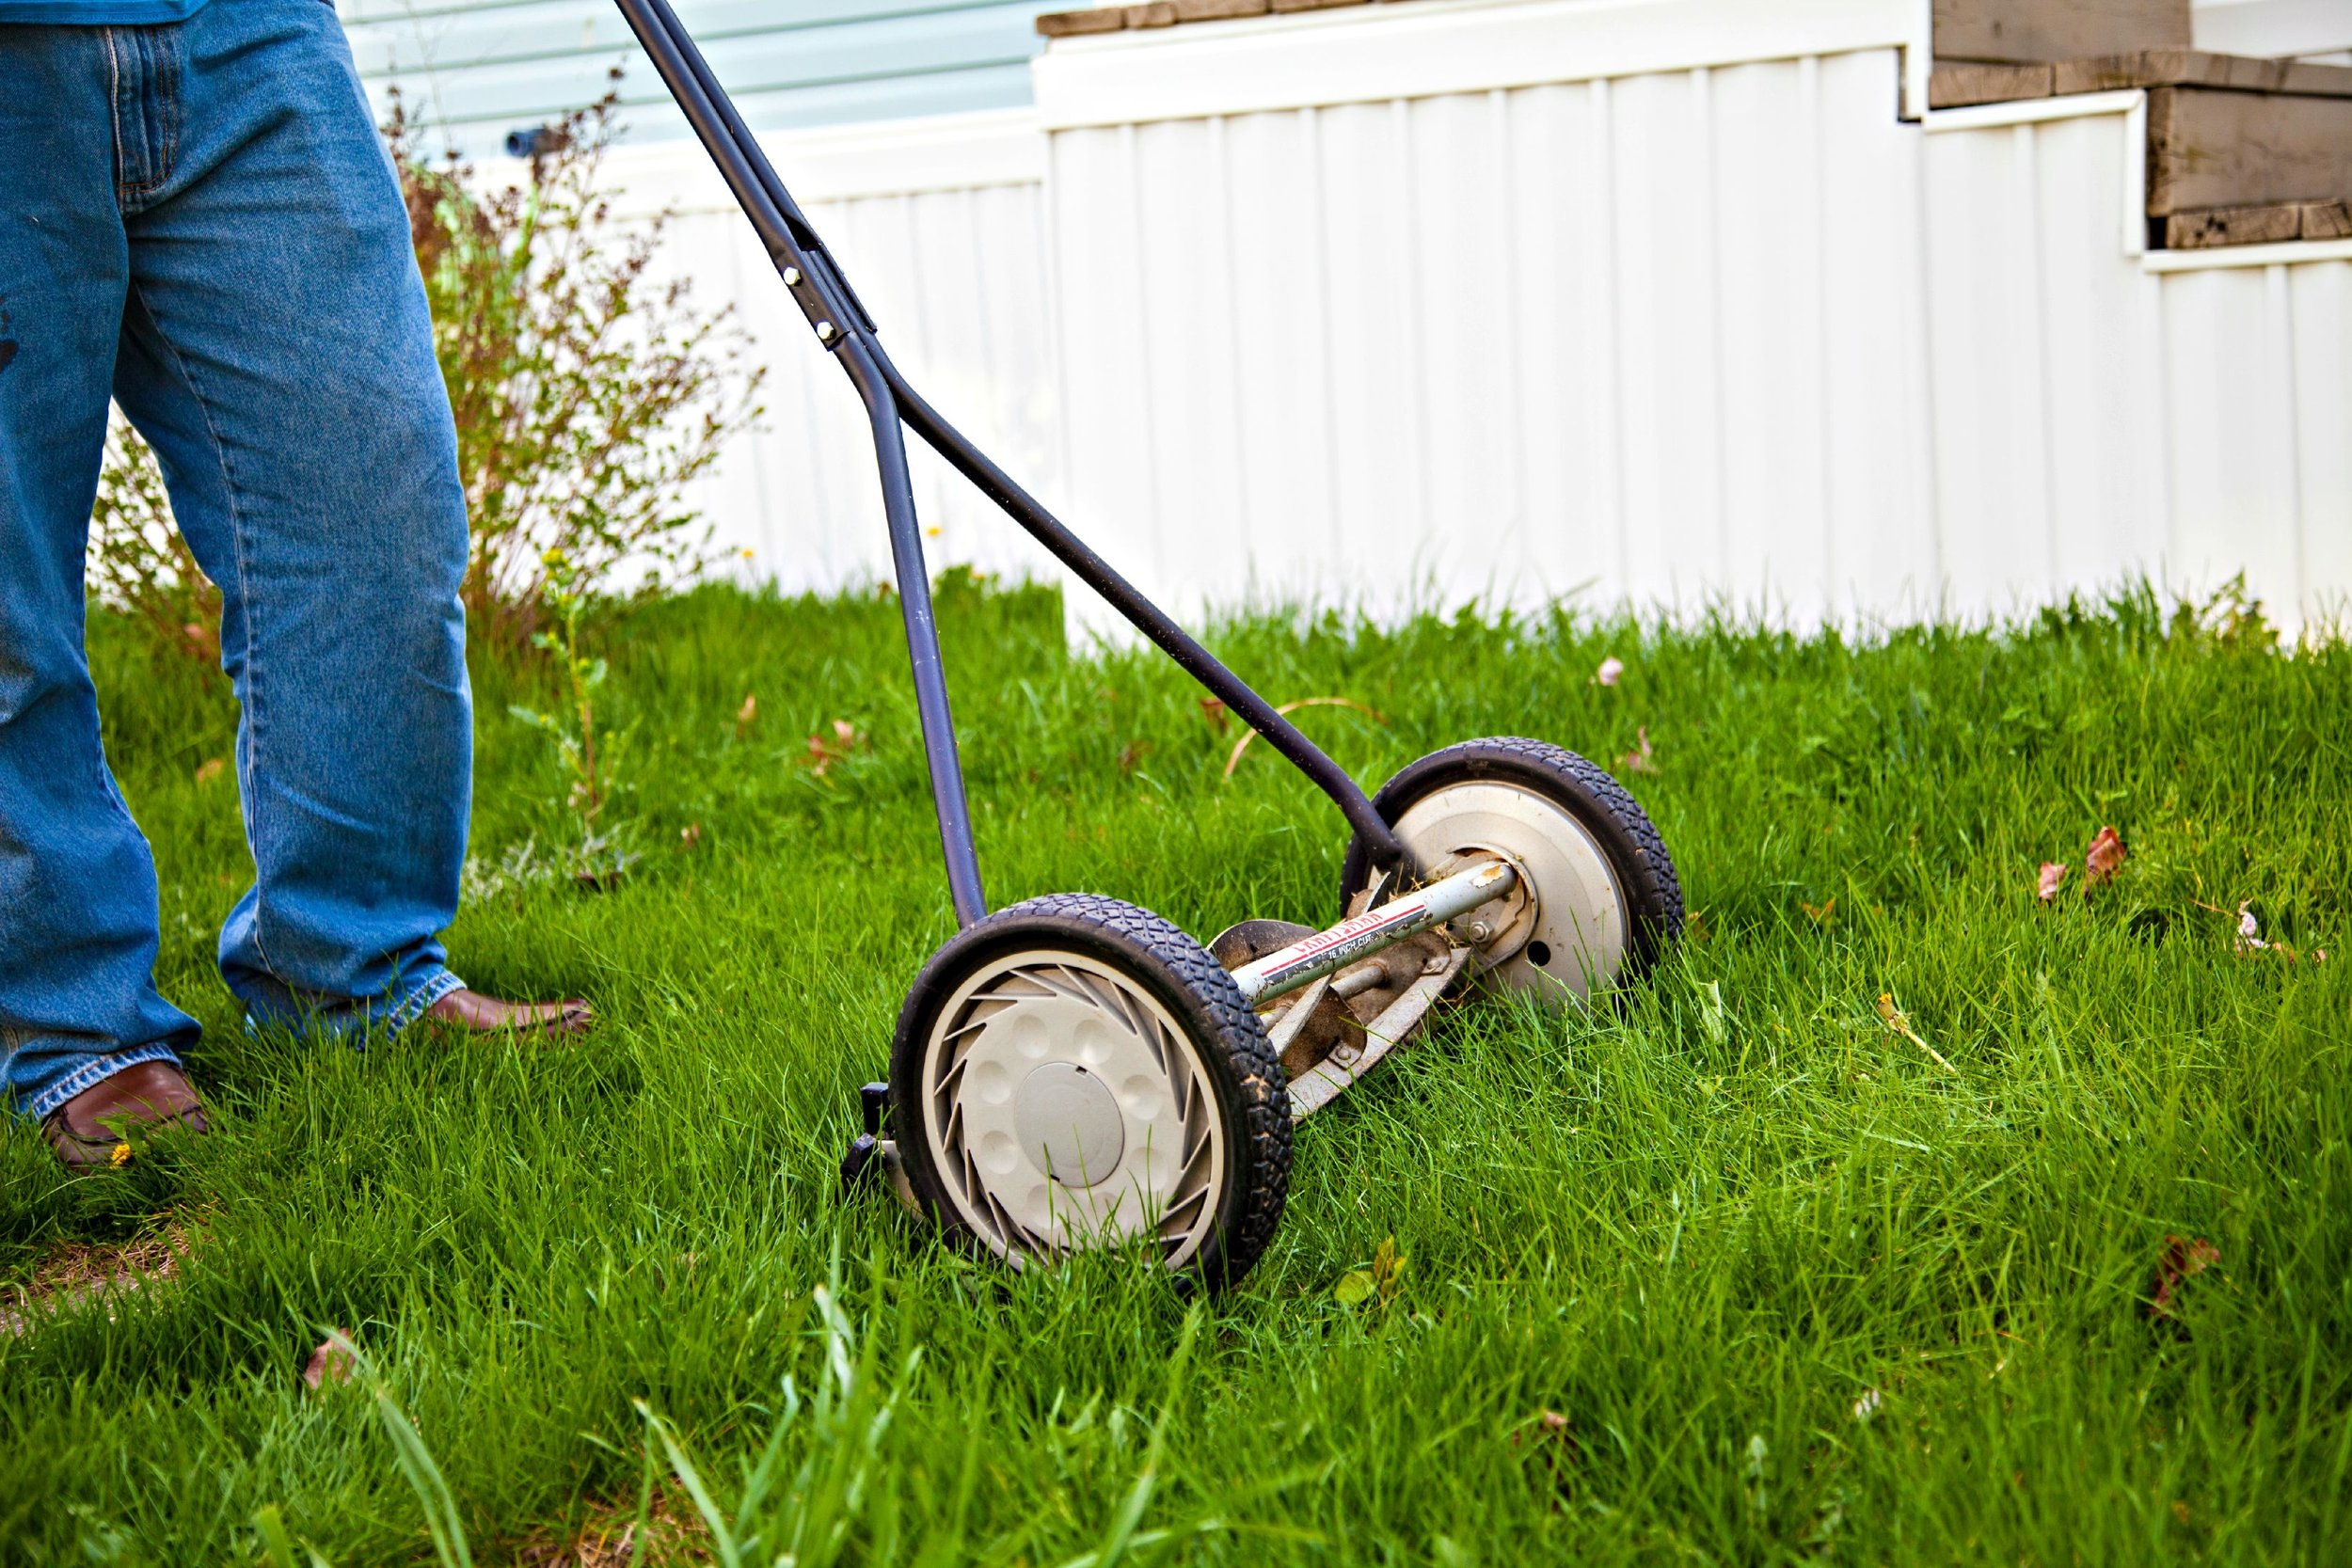 how-much-does-lawn-mowing-cost-angies-list-reel-mower-grass-your-summer-vs-winter-some-volunteer-programs-like-care-for-elderly-neighbors-dont-re_summer-lawn-care_remodel-bathro.jpg